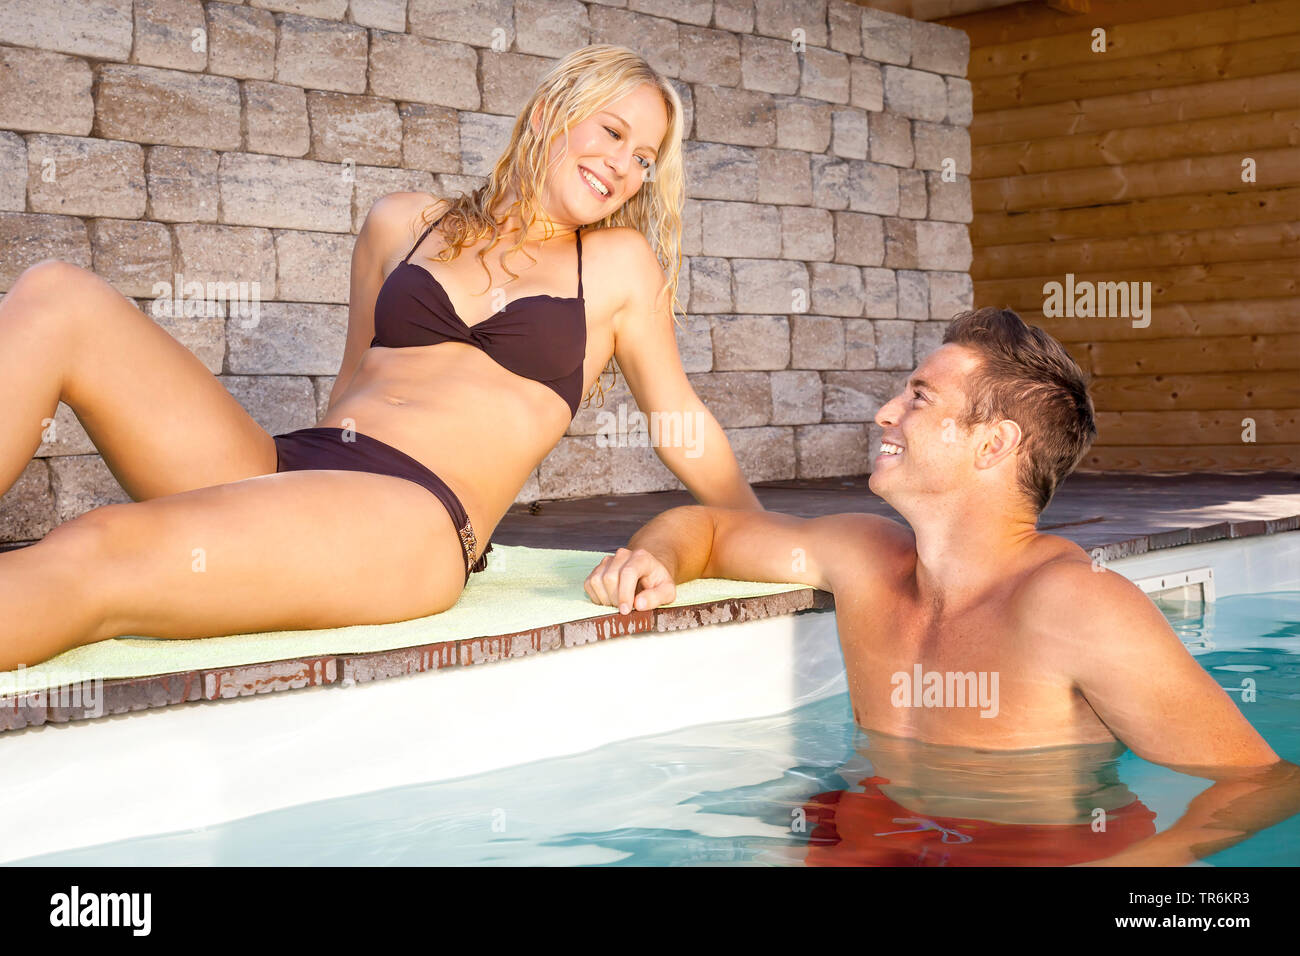 junges Paar entspannt sich am Schwimmbeckenrand, Deutschland | young couple relaxing at a pool, Germany | BLWS486428.jpg [ (c) blickwinkel/McPHOTO/M. - Stock Image